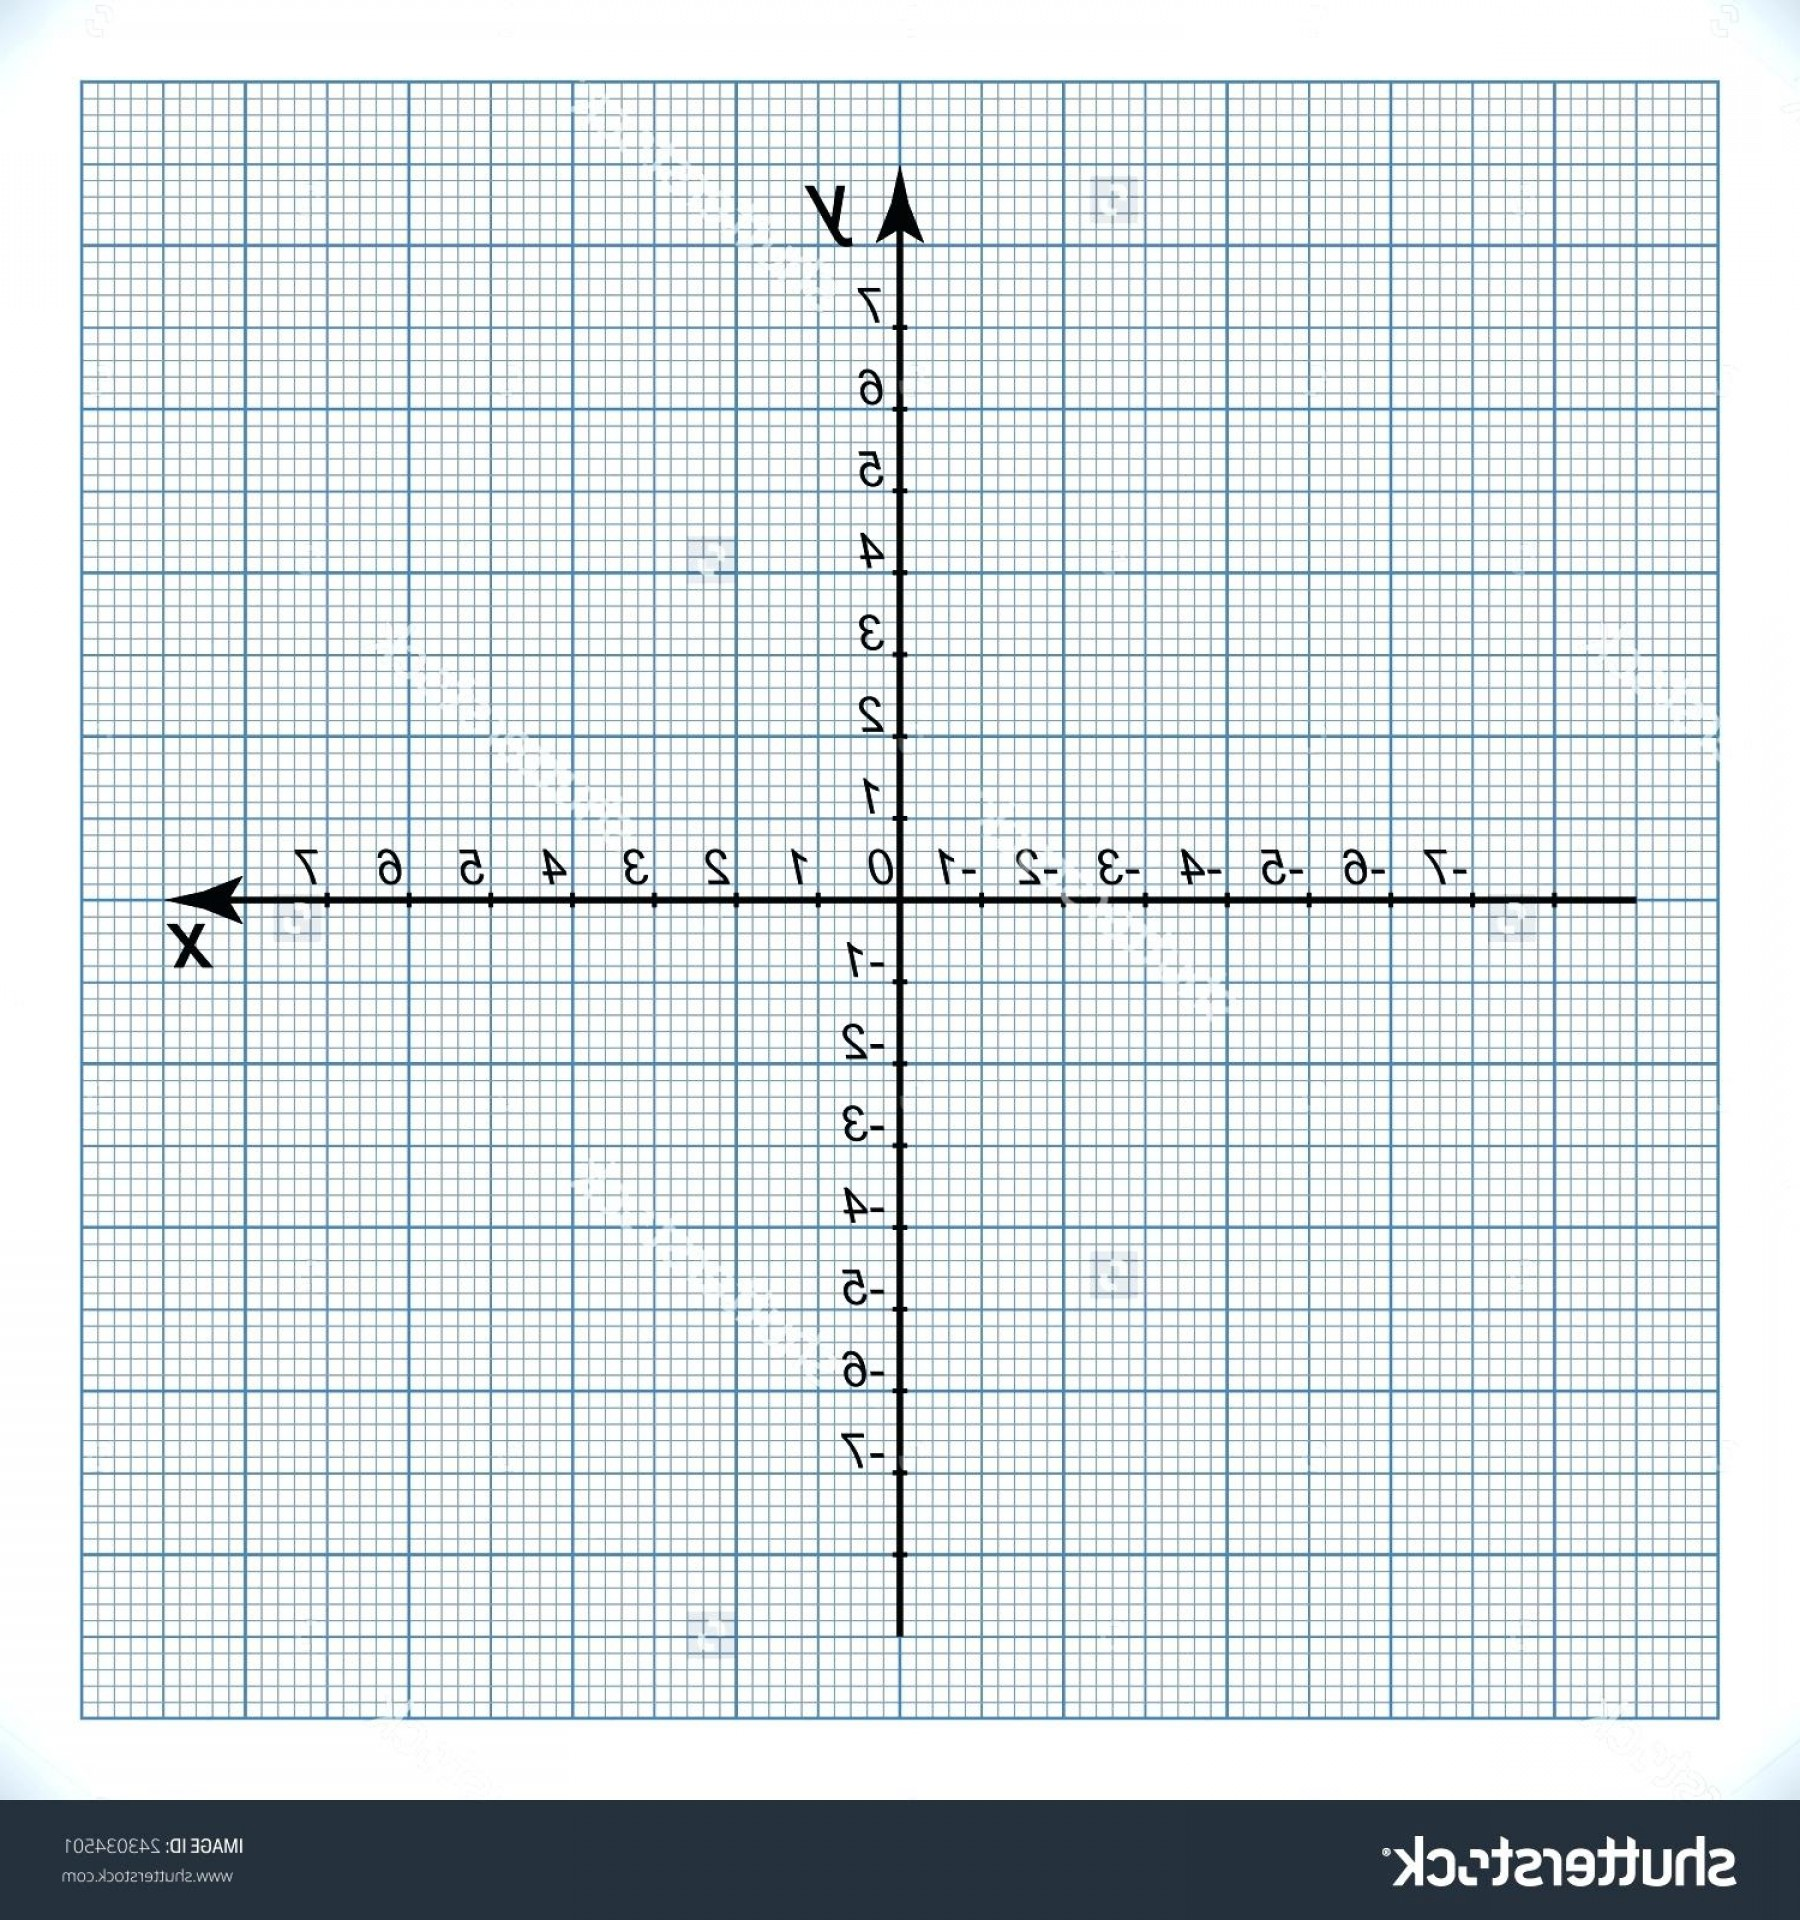 blank grid template graph paper templates that you can customize